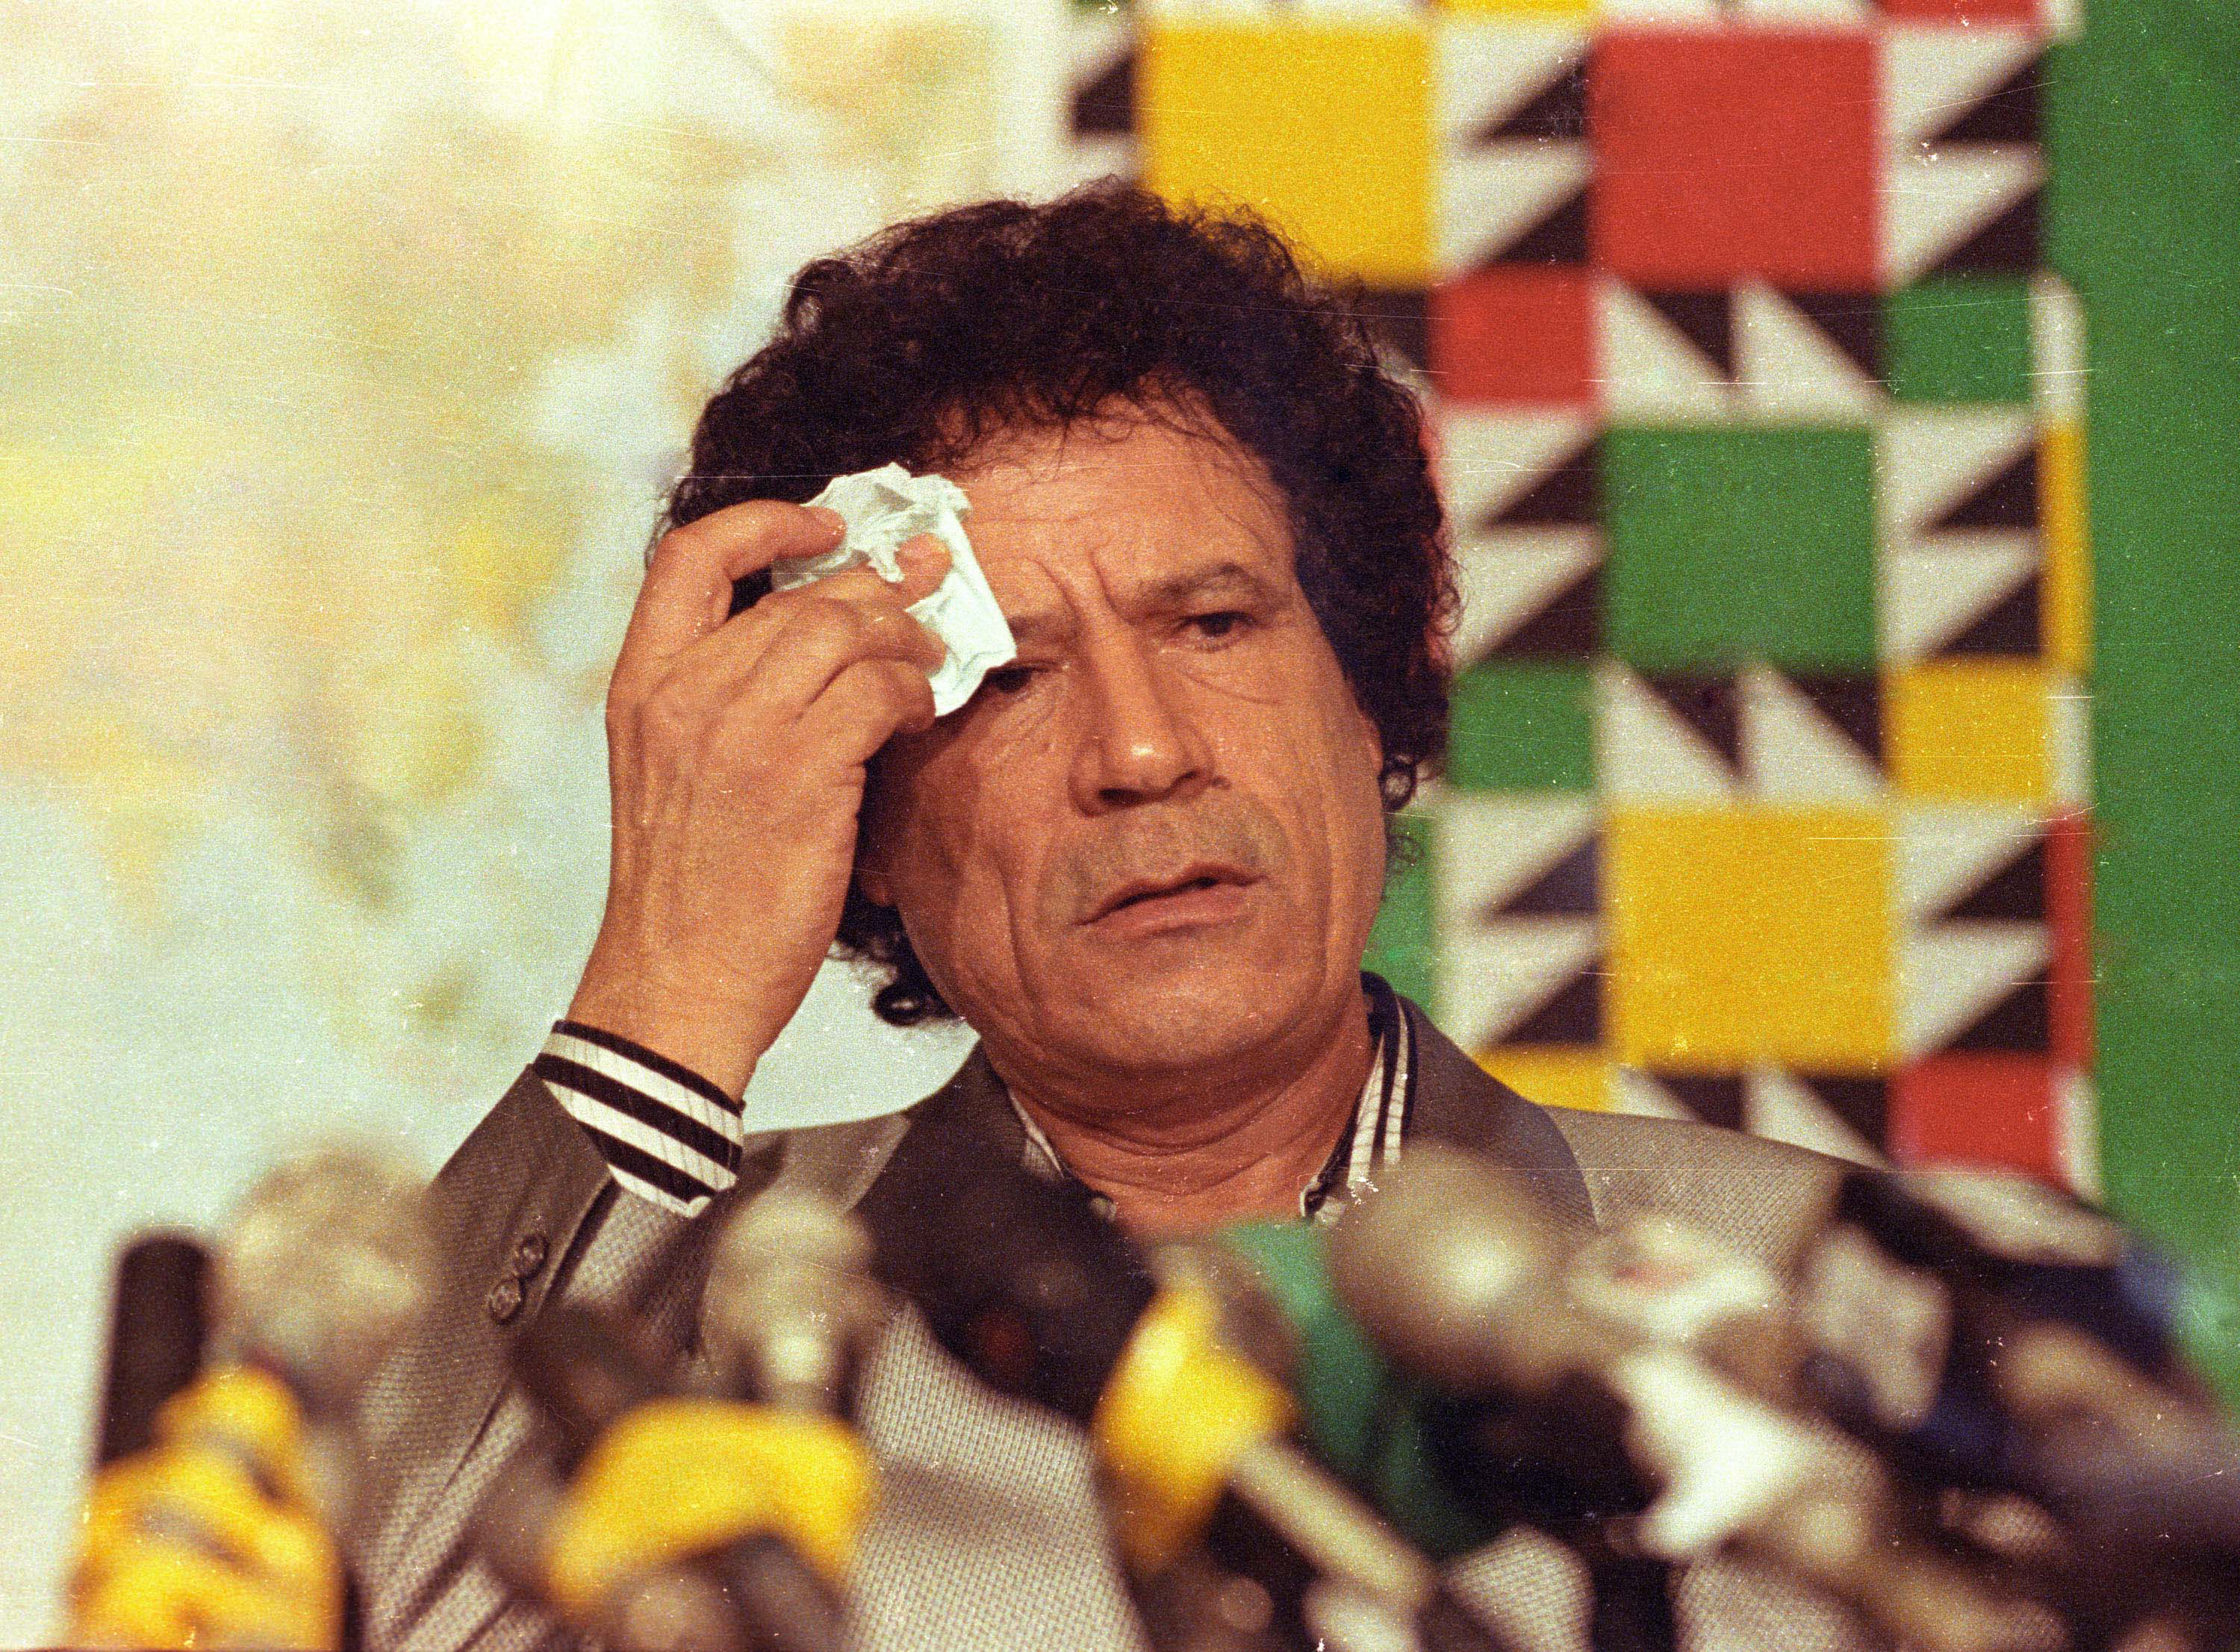 Libyan leader Colonel Muammar Gaddafi wipes his brow during a press conference held at Al Azizia in Tripoli August 20, 1990. Colonel Gaddafi denounced the U.S. blocade on Iraq and threatened to withdraw from the United Nations organization. Reuters/Charles Platiau   BEST QUALITY AVAILABLE - RTR2IZ0Q